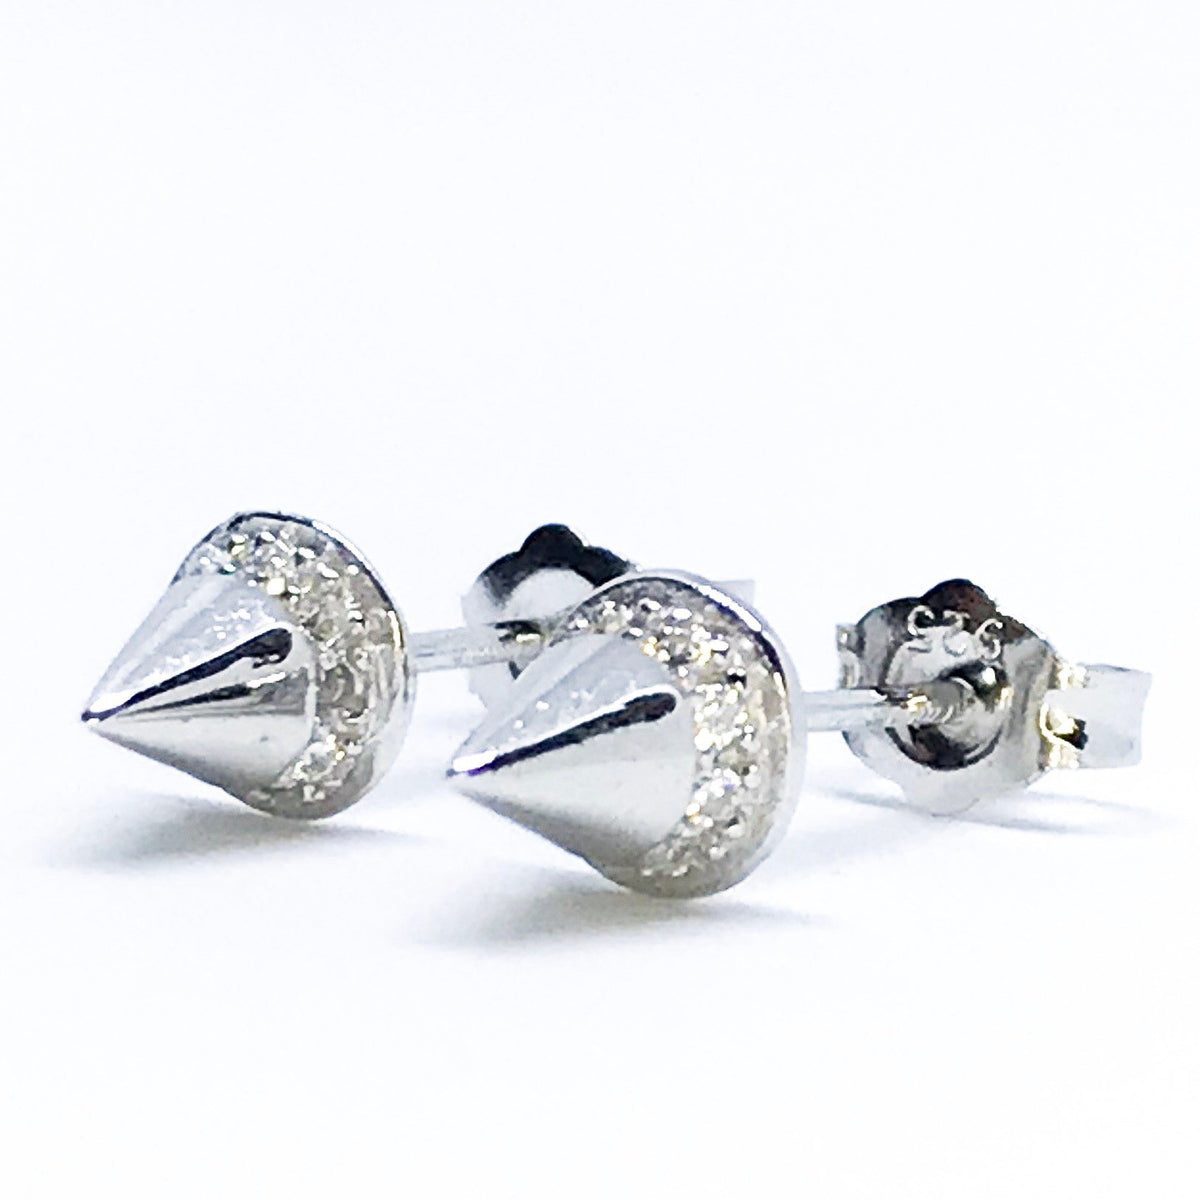 NEW 14k White Gold Layered on Sterling Silver Sharp Point Earrings